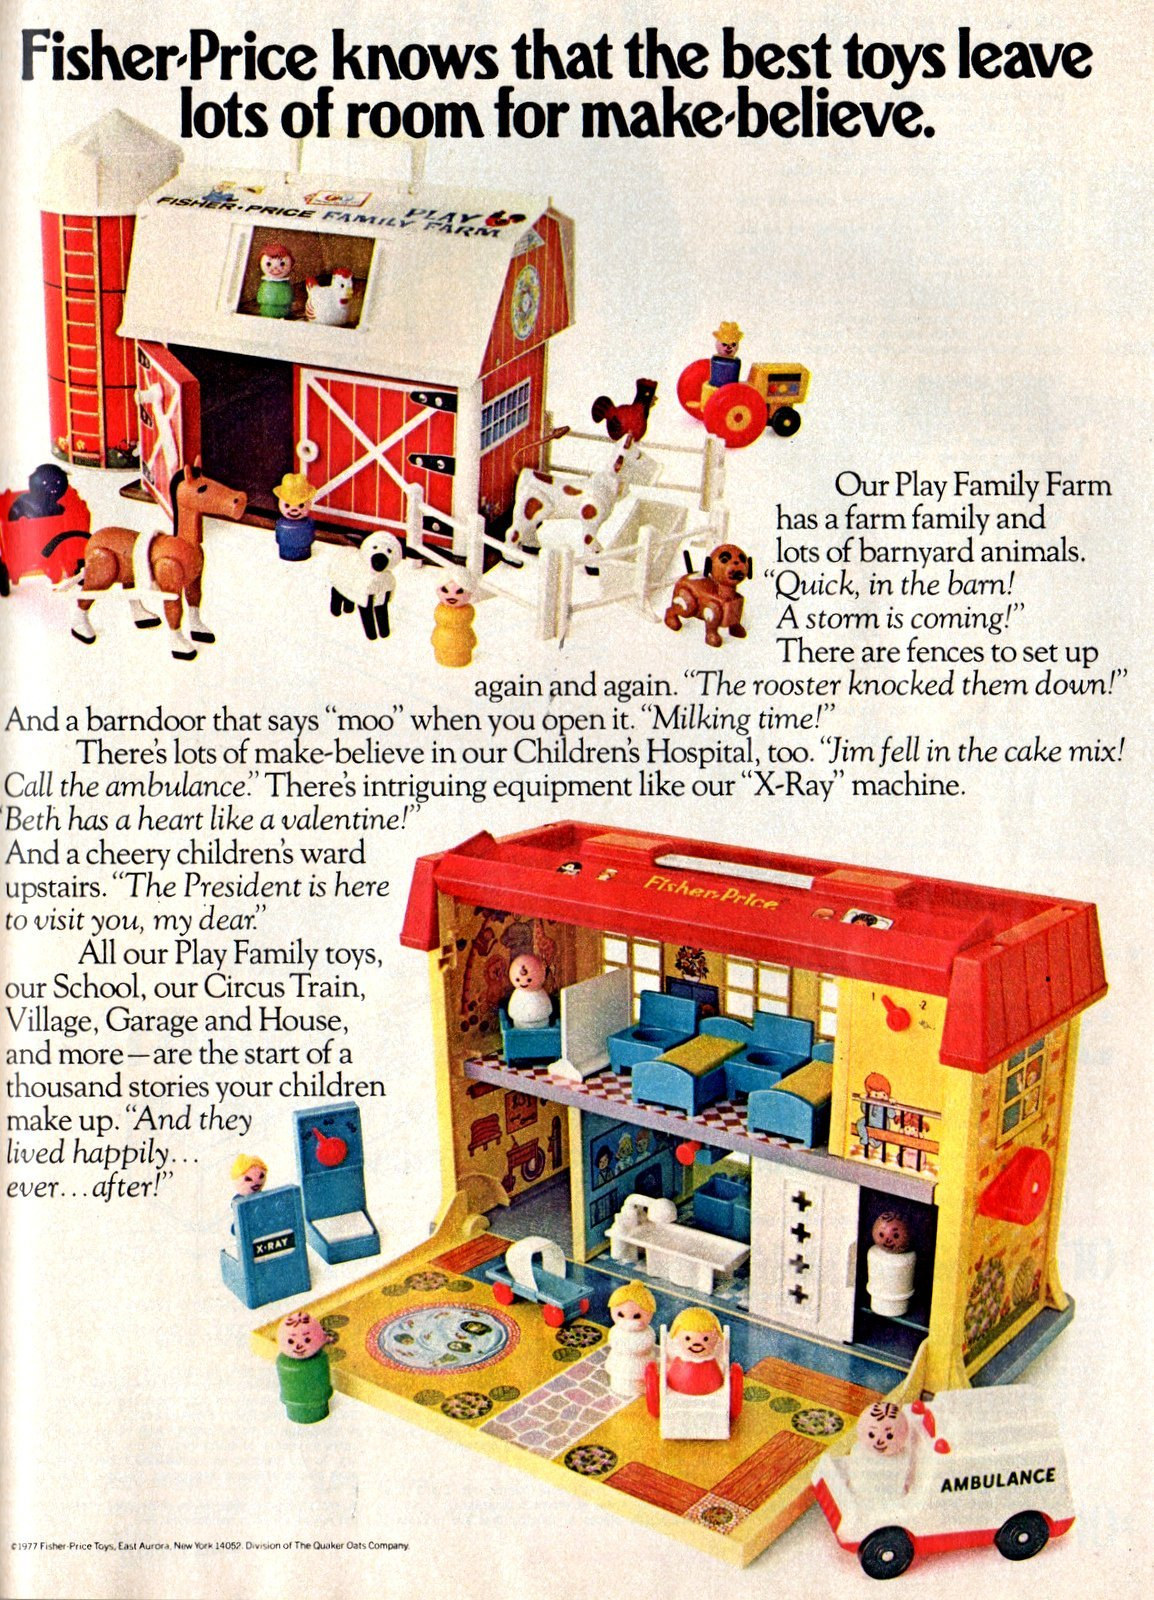 Fisher Price Little People play sets from 1977